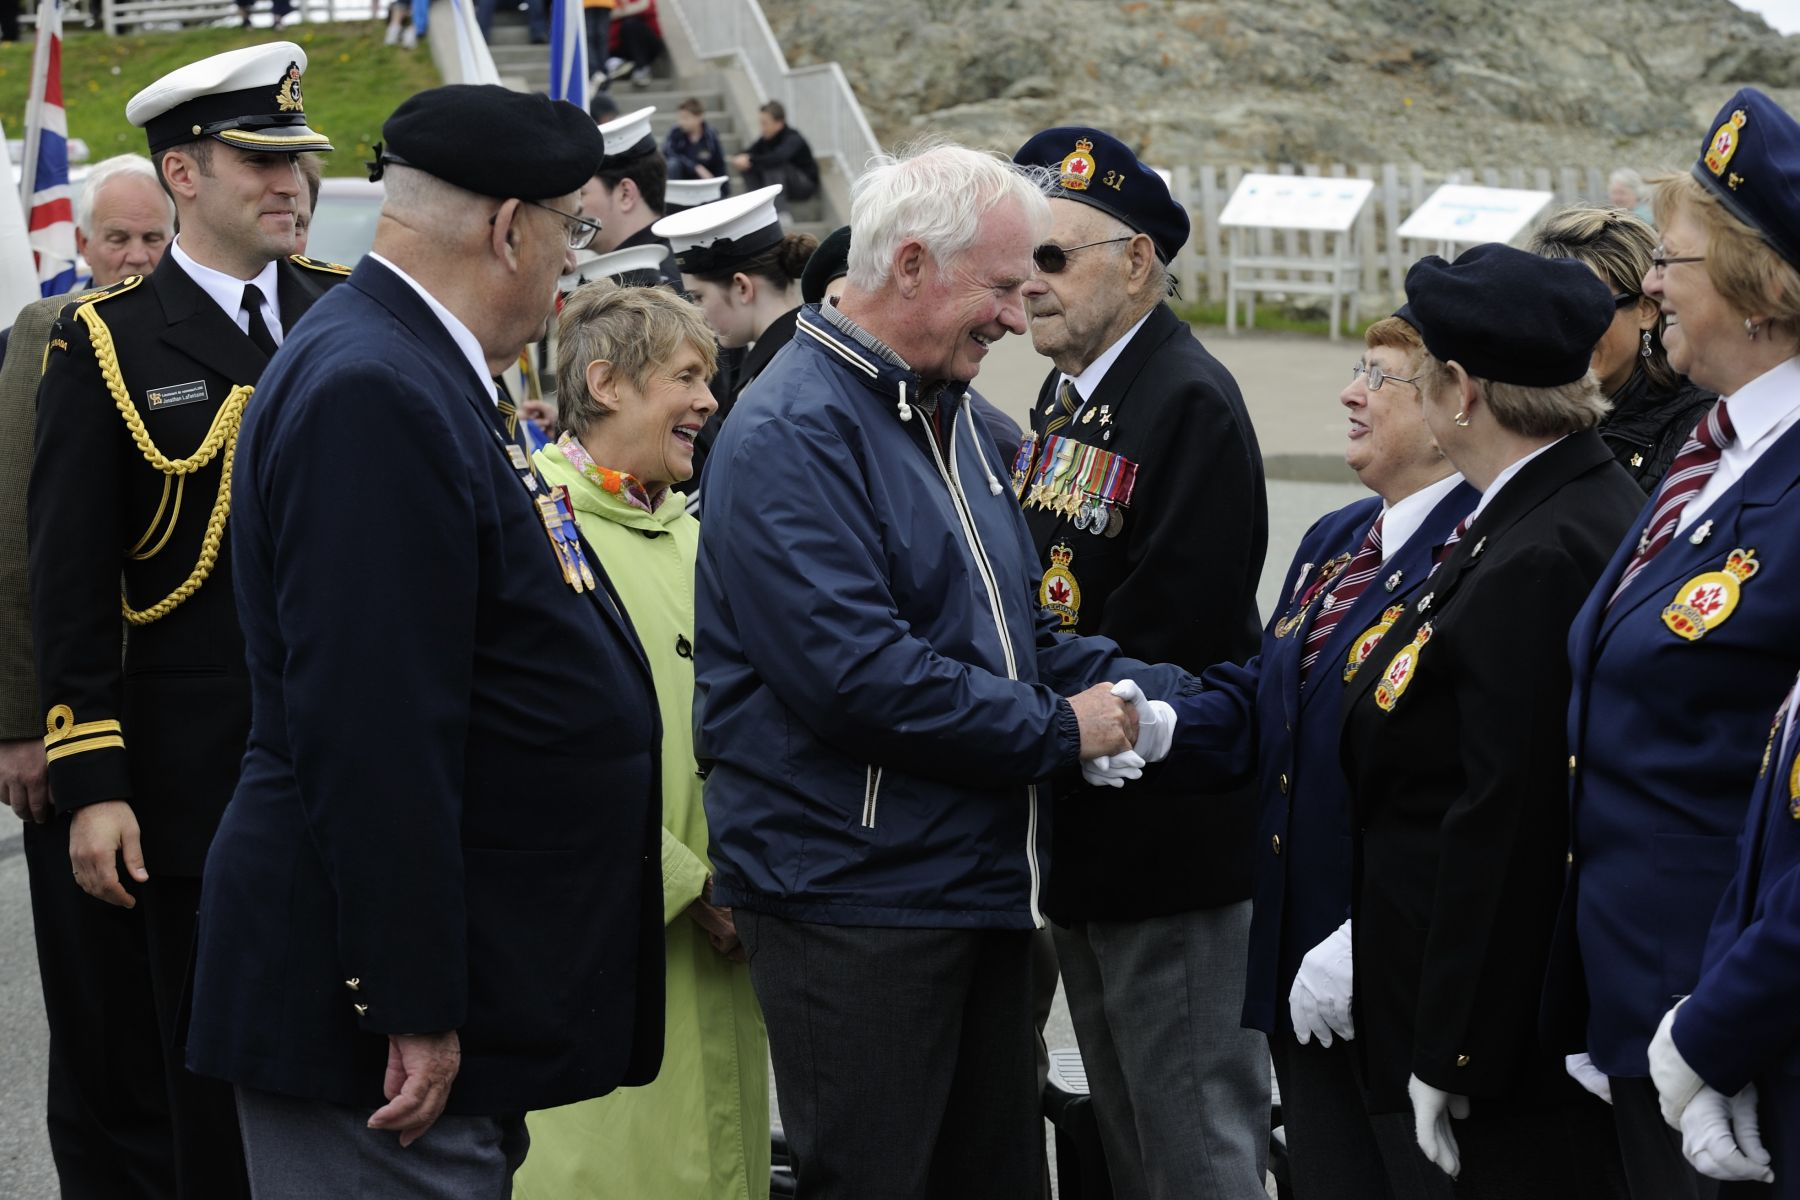 Their Excellencies met with veterans who attended this special ceremony.